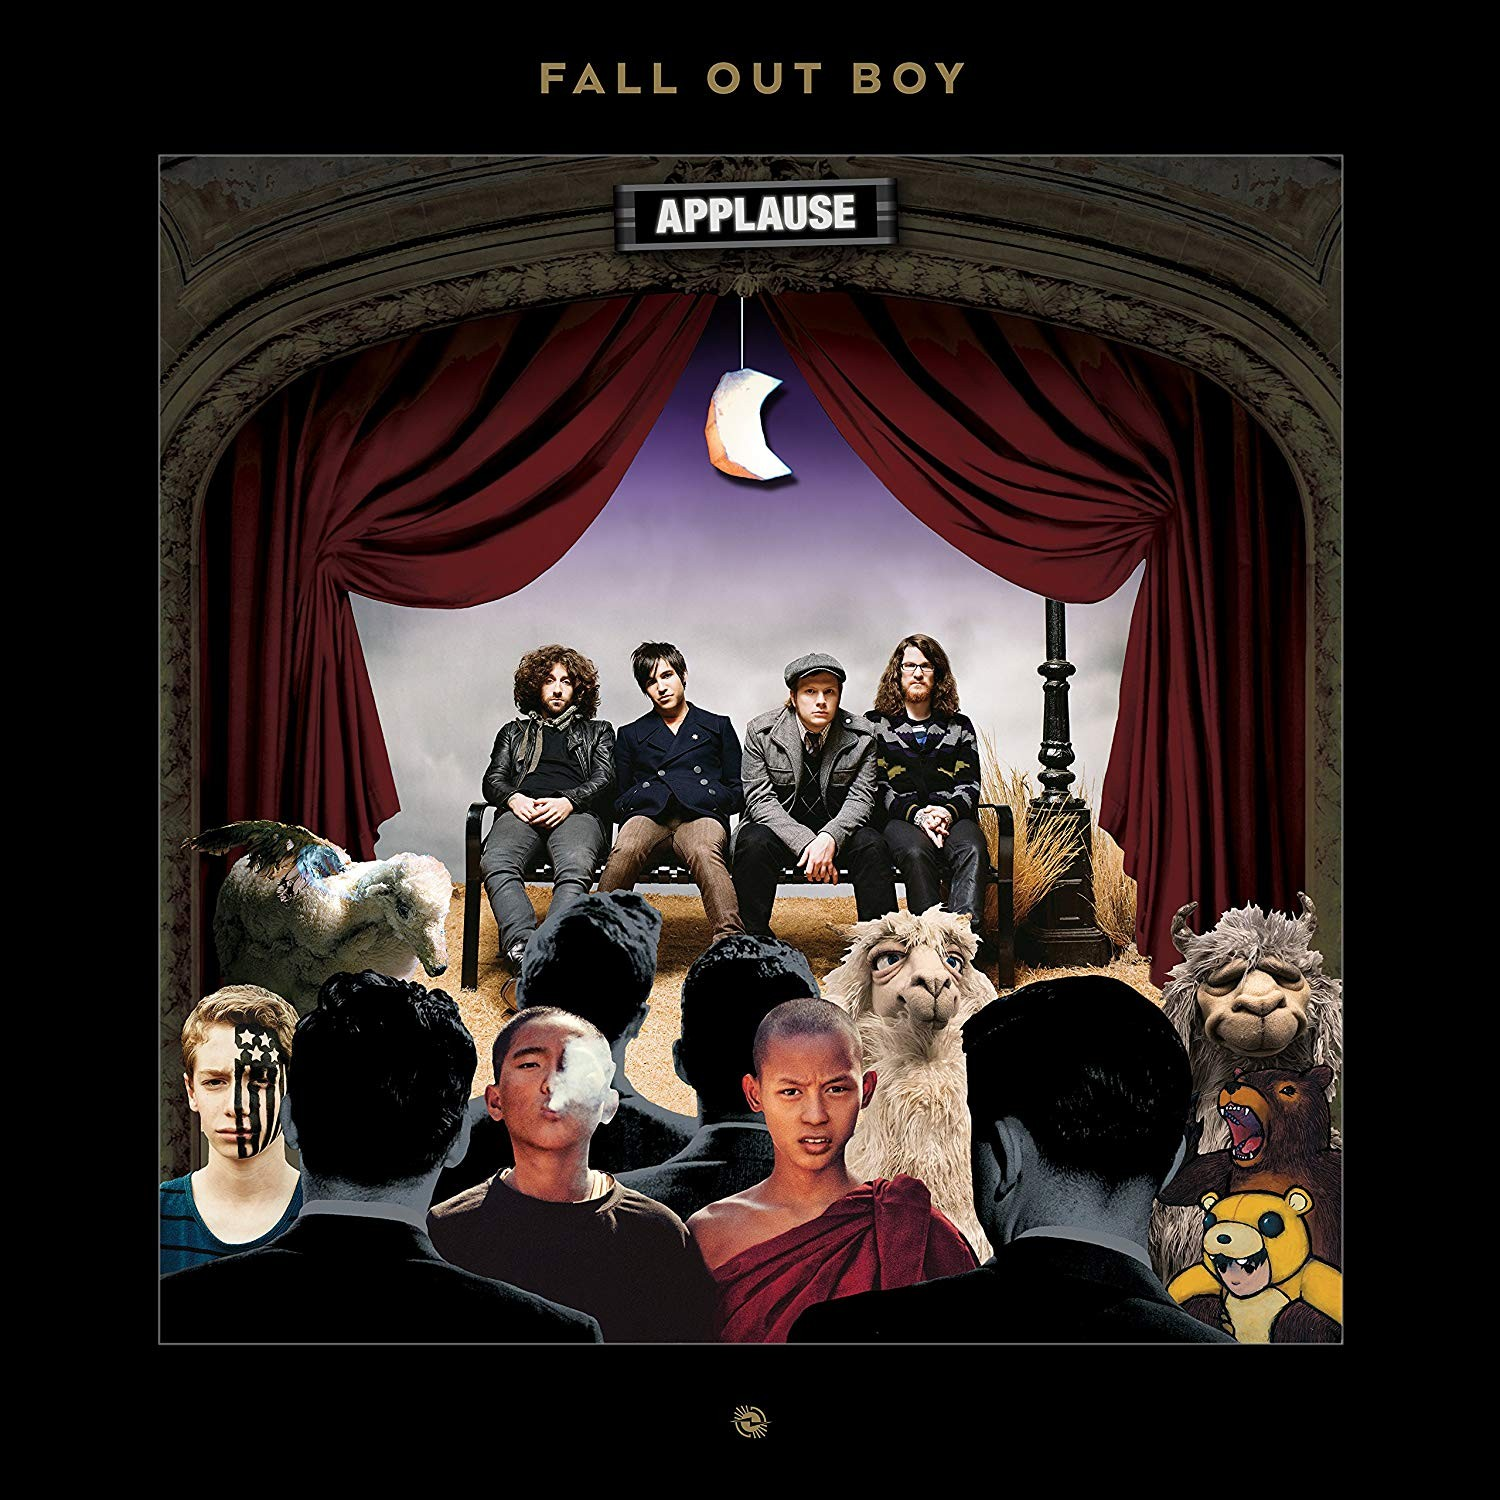 Fall Out Boy - Complete Studio Albums Boxset